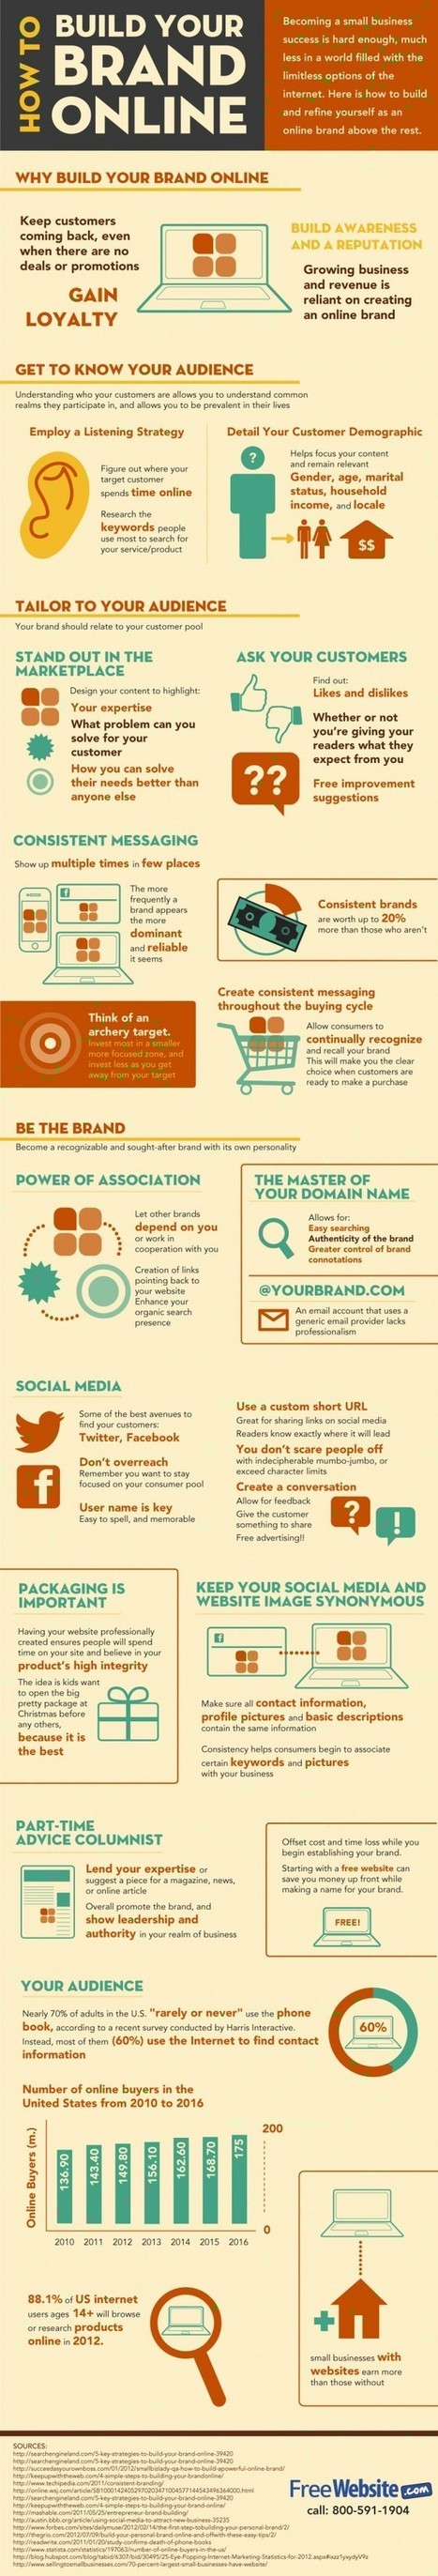 Why You Need to Build Your Brand Online [infographic] | SocialMediaDesign | Scoop.it